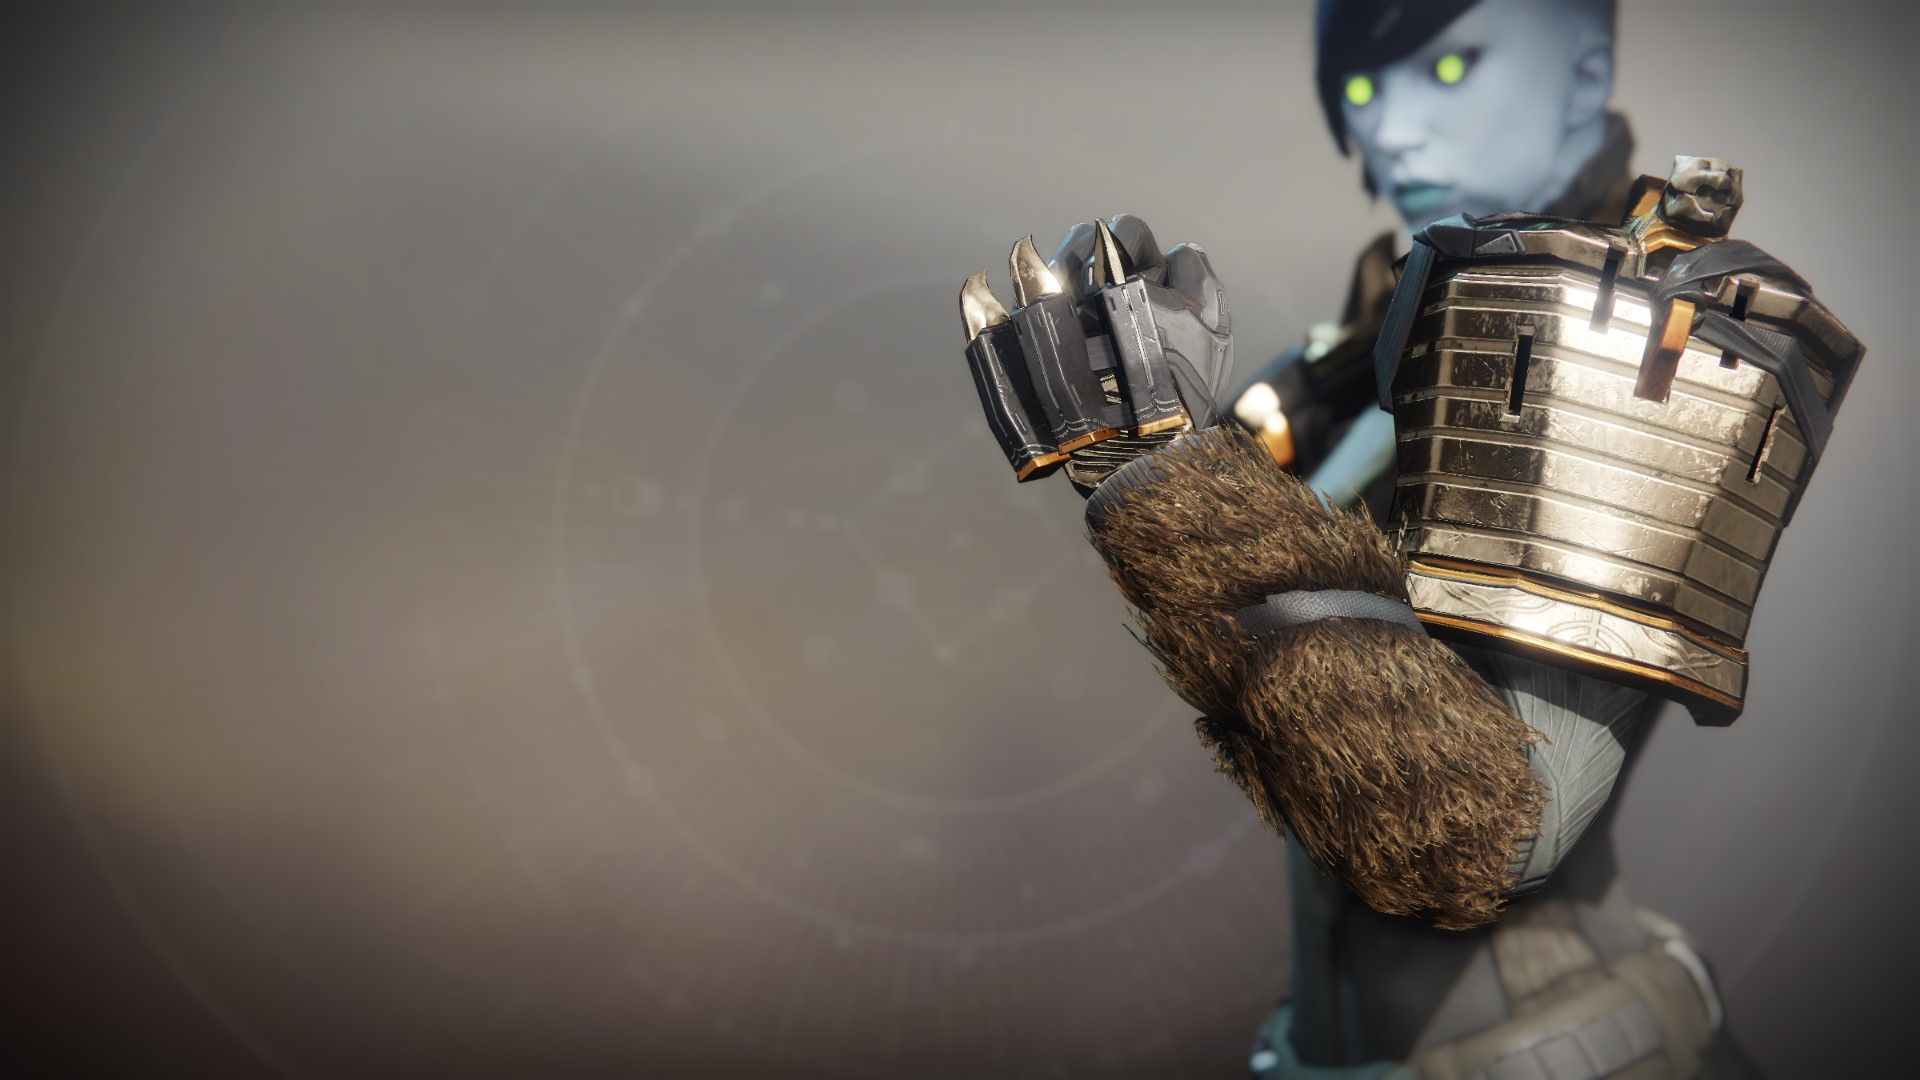 An in-game render of the Ursa Furiosa.